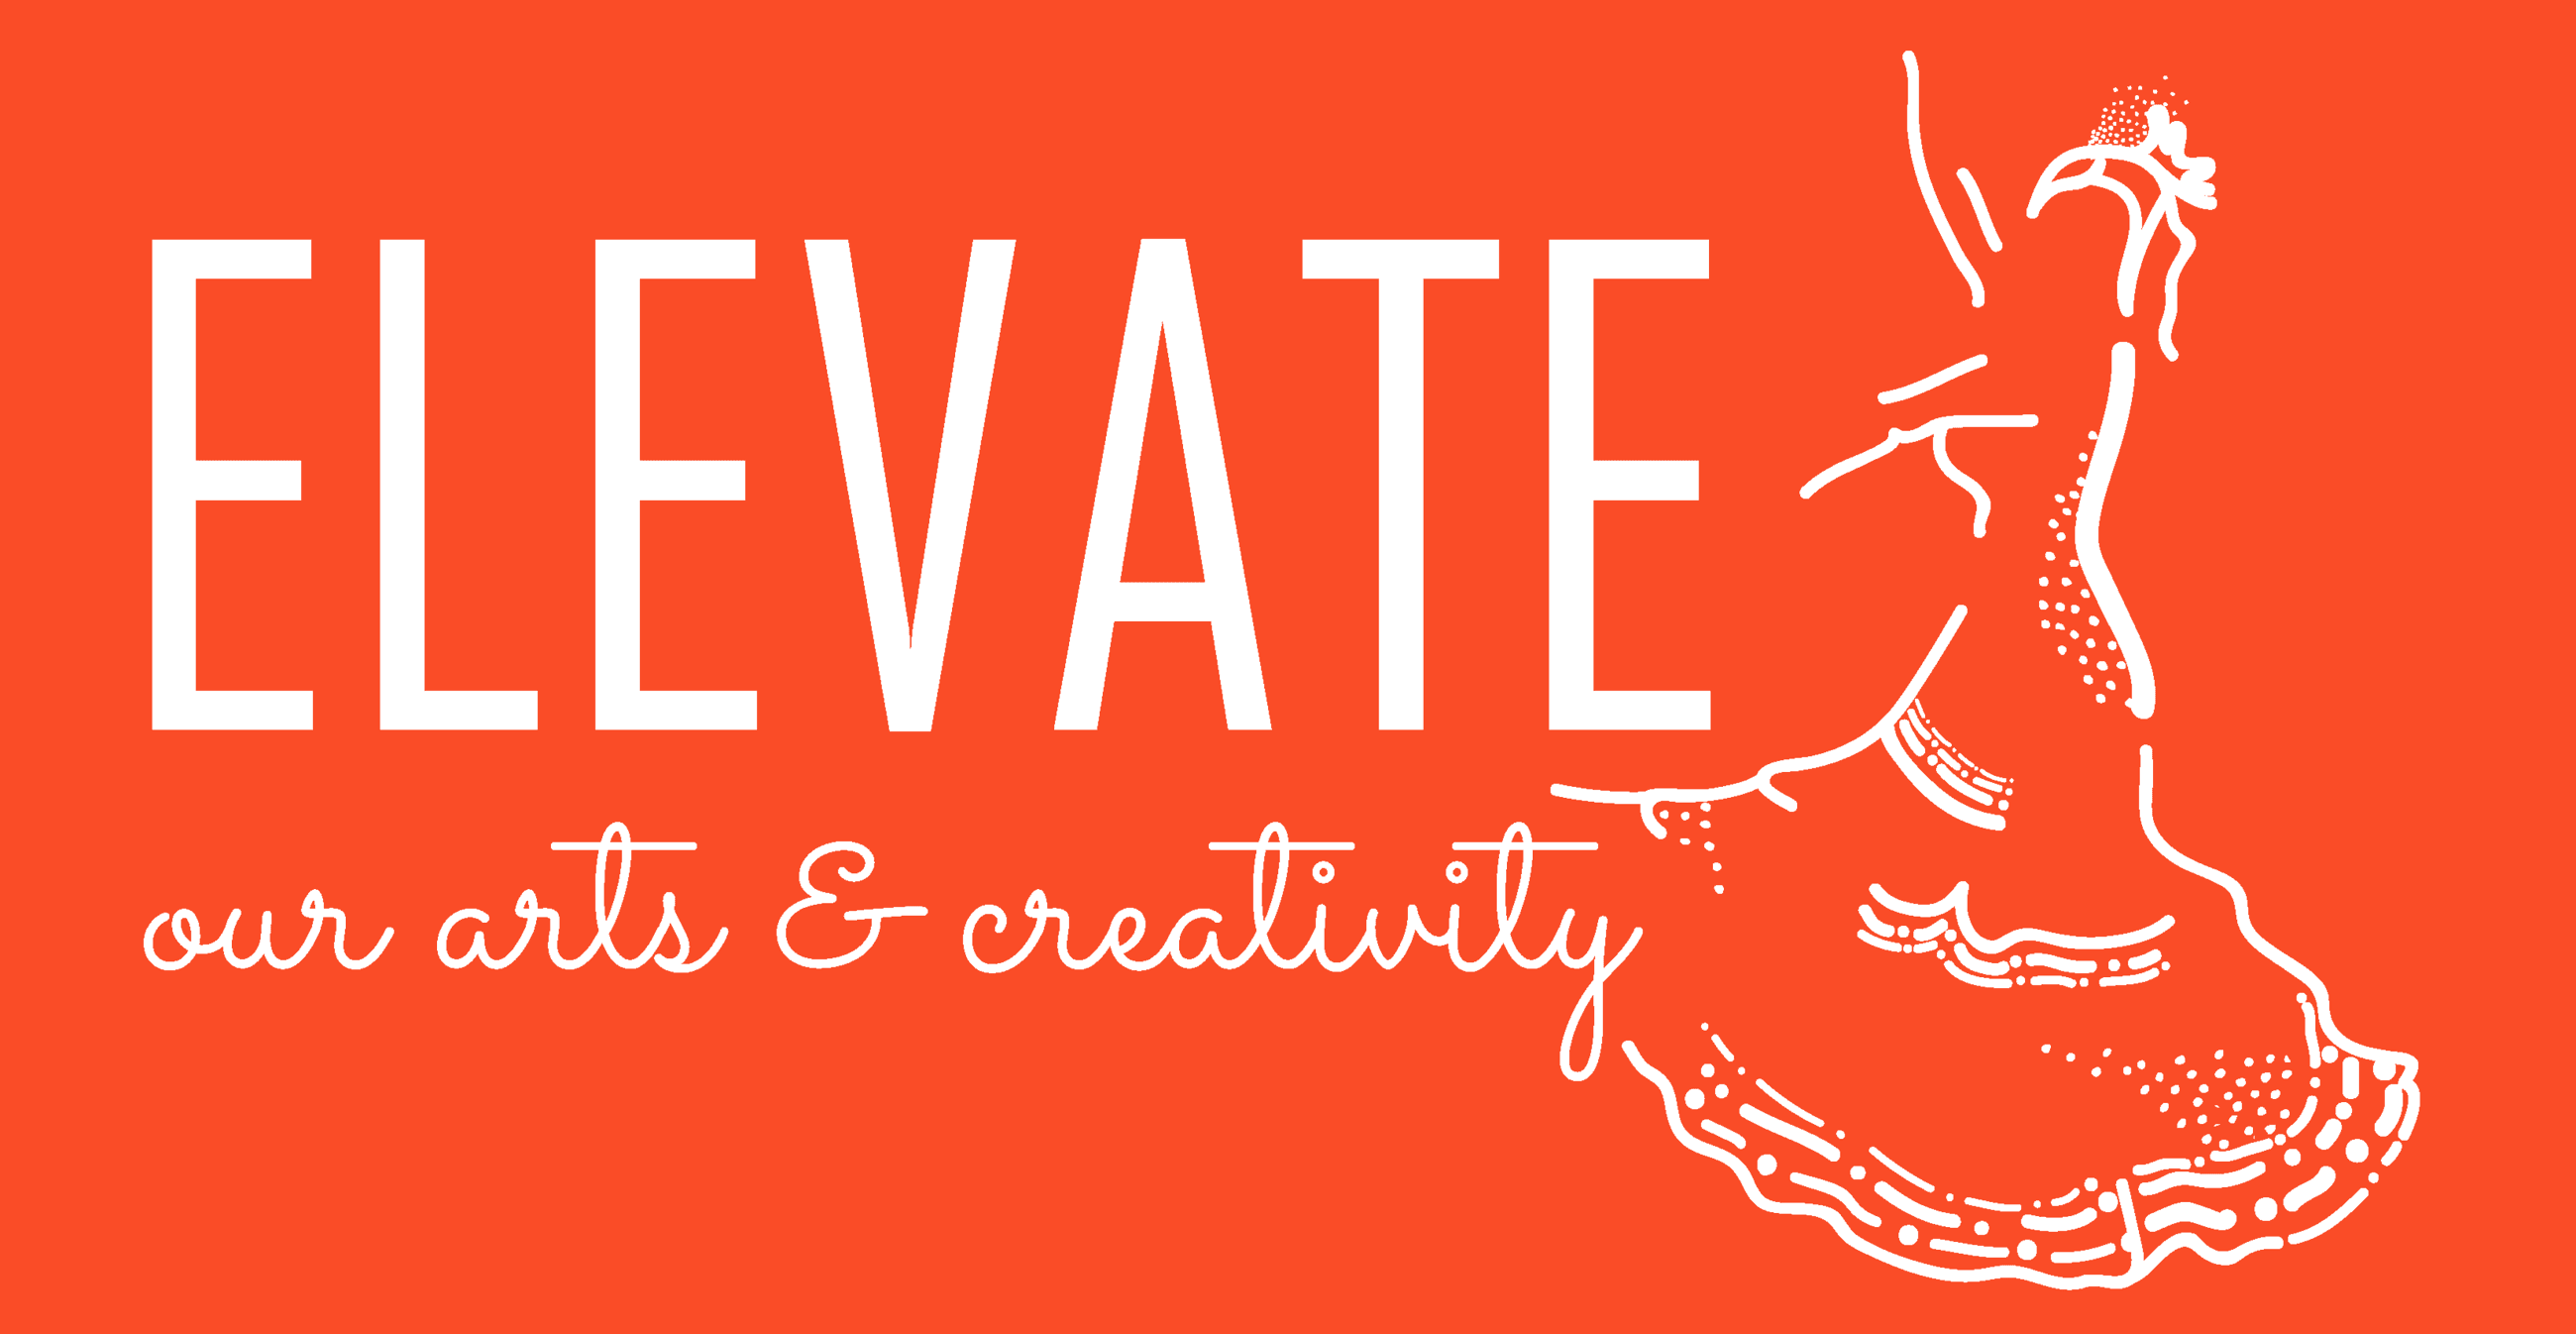 Elevate Our Arts and Creativity__Dancer_White Logo_Orange back